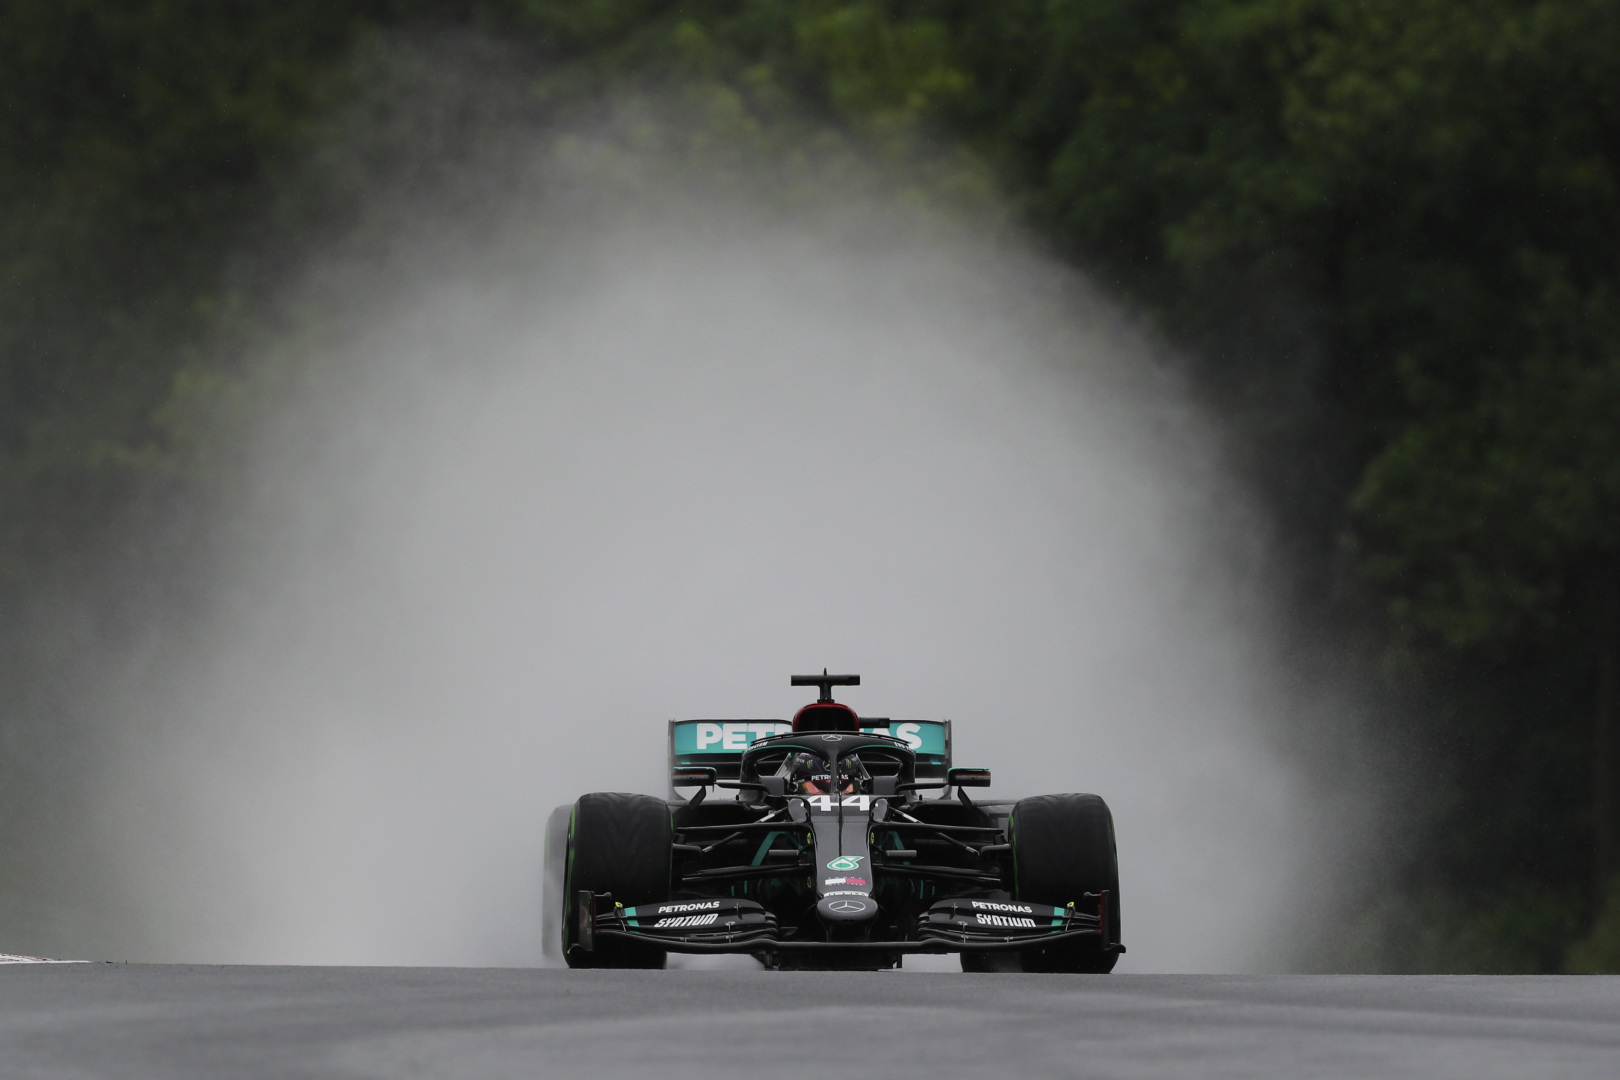 mercedes amg petronas car driving in cloud of smoke